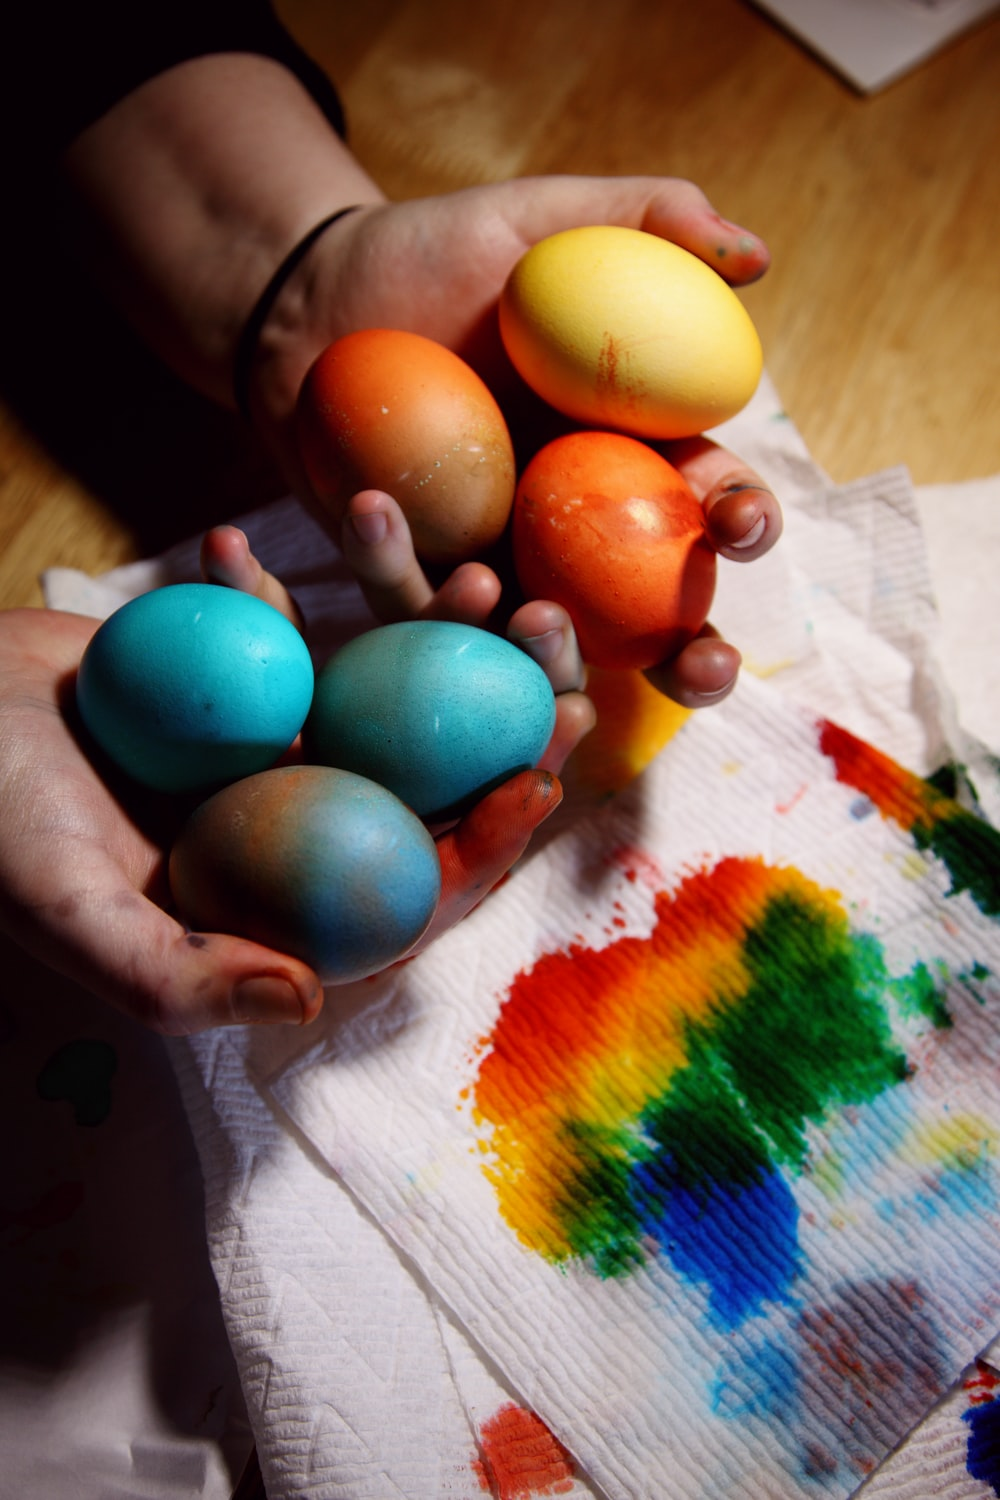 person holding blue and yellow egg